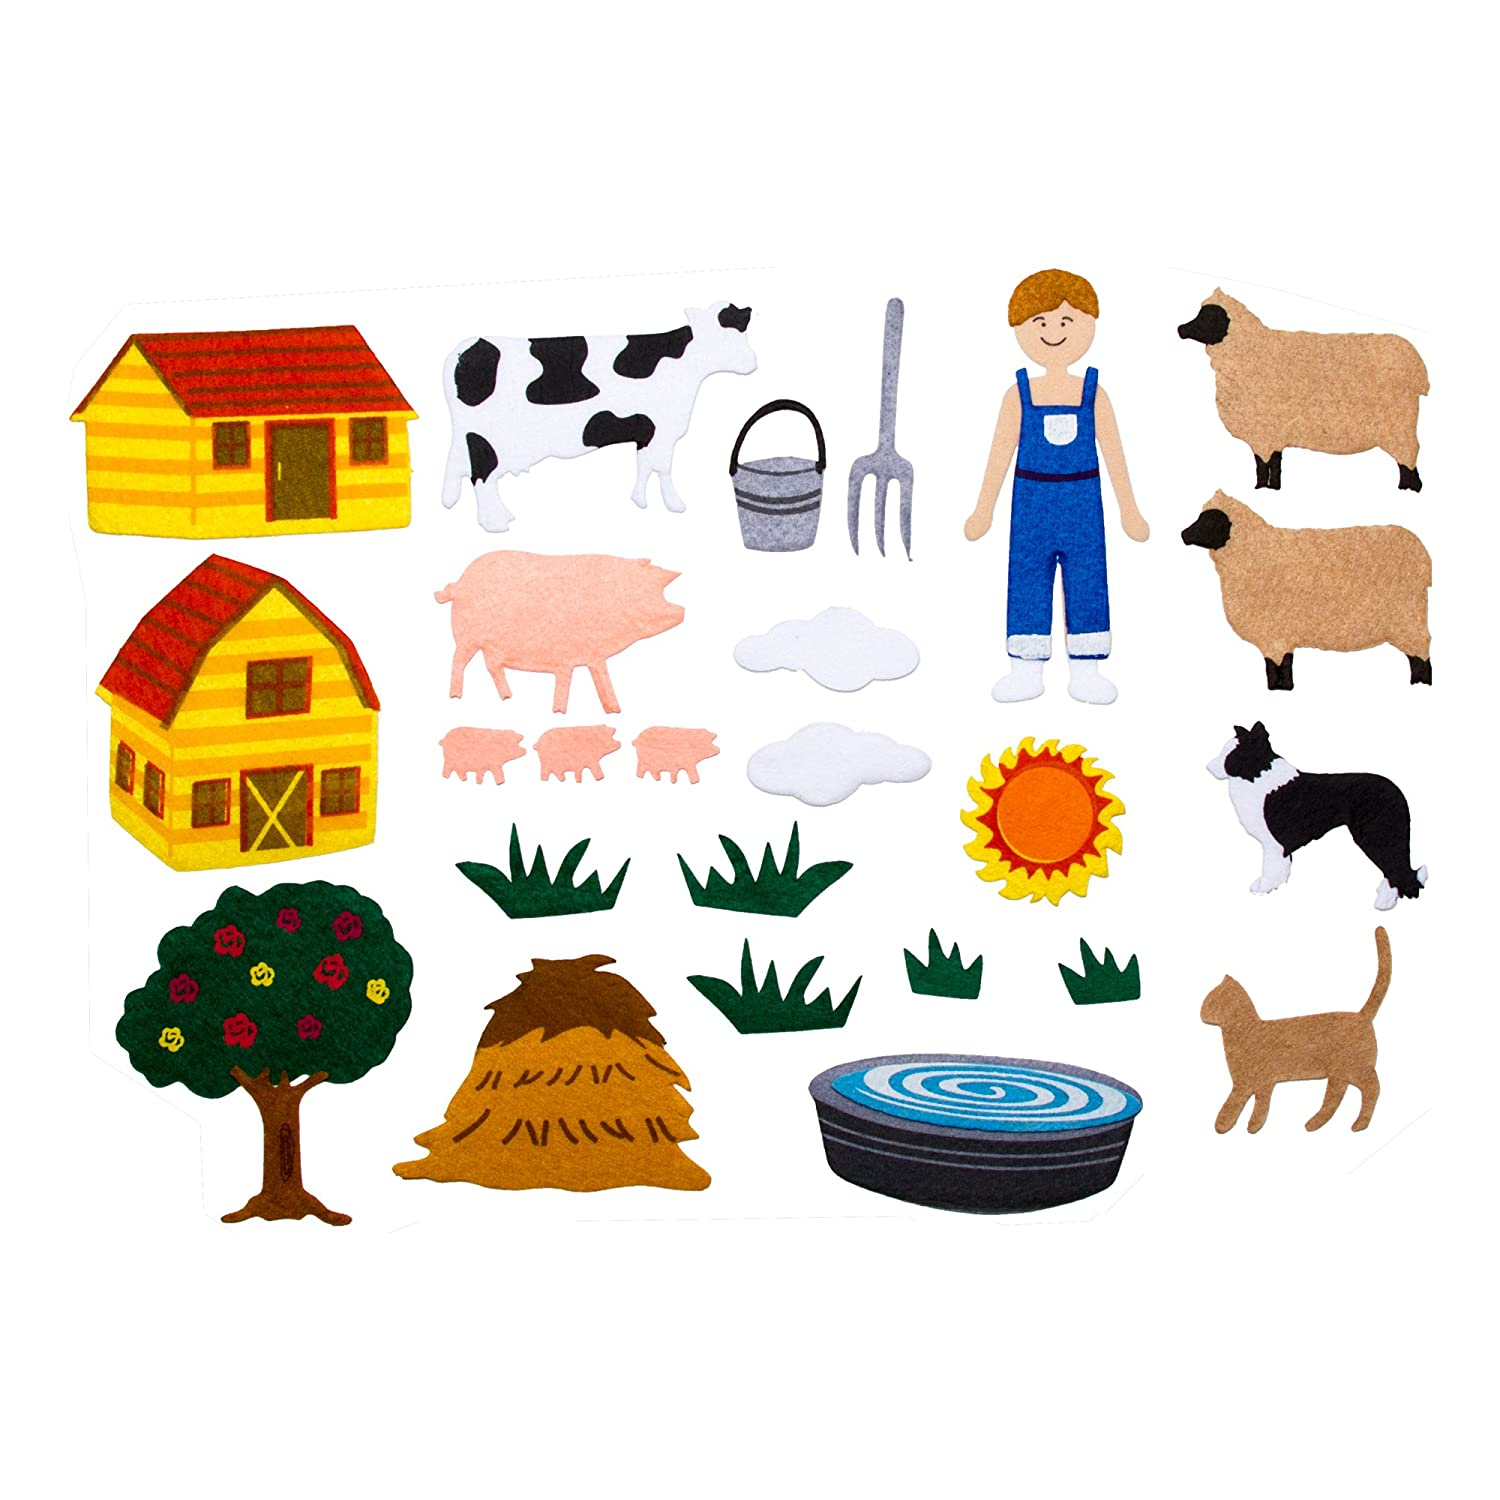 Cows Sheep and Cabin School Outfitters SPG-ENA1053-SO Barn Felt Storyboard w// Pigs